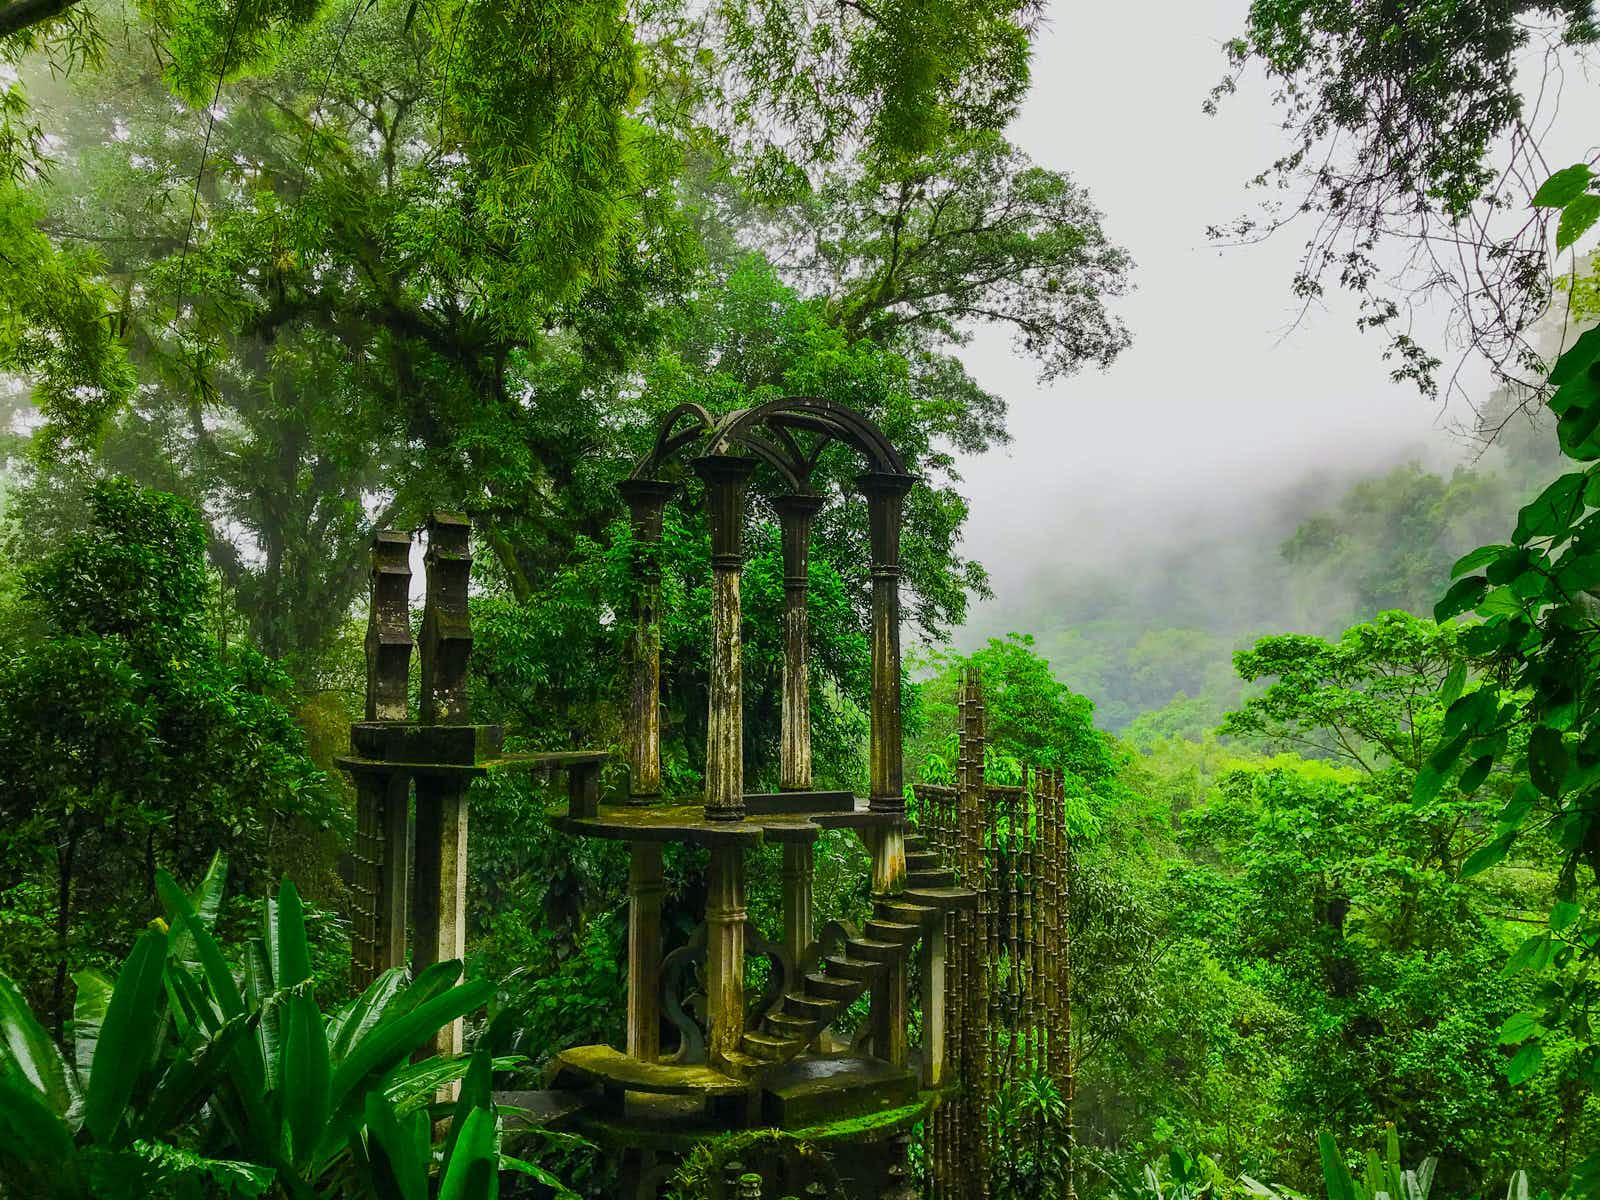 A stone staircase ends at the tops of trees on a verdant hillside